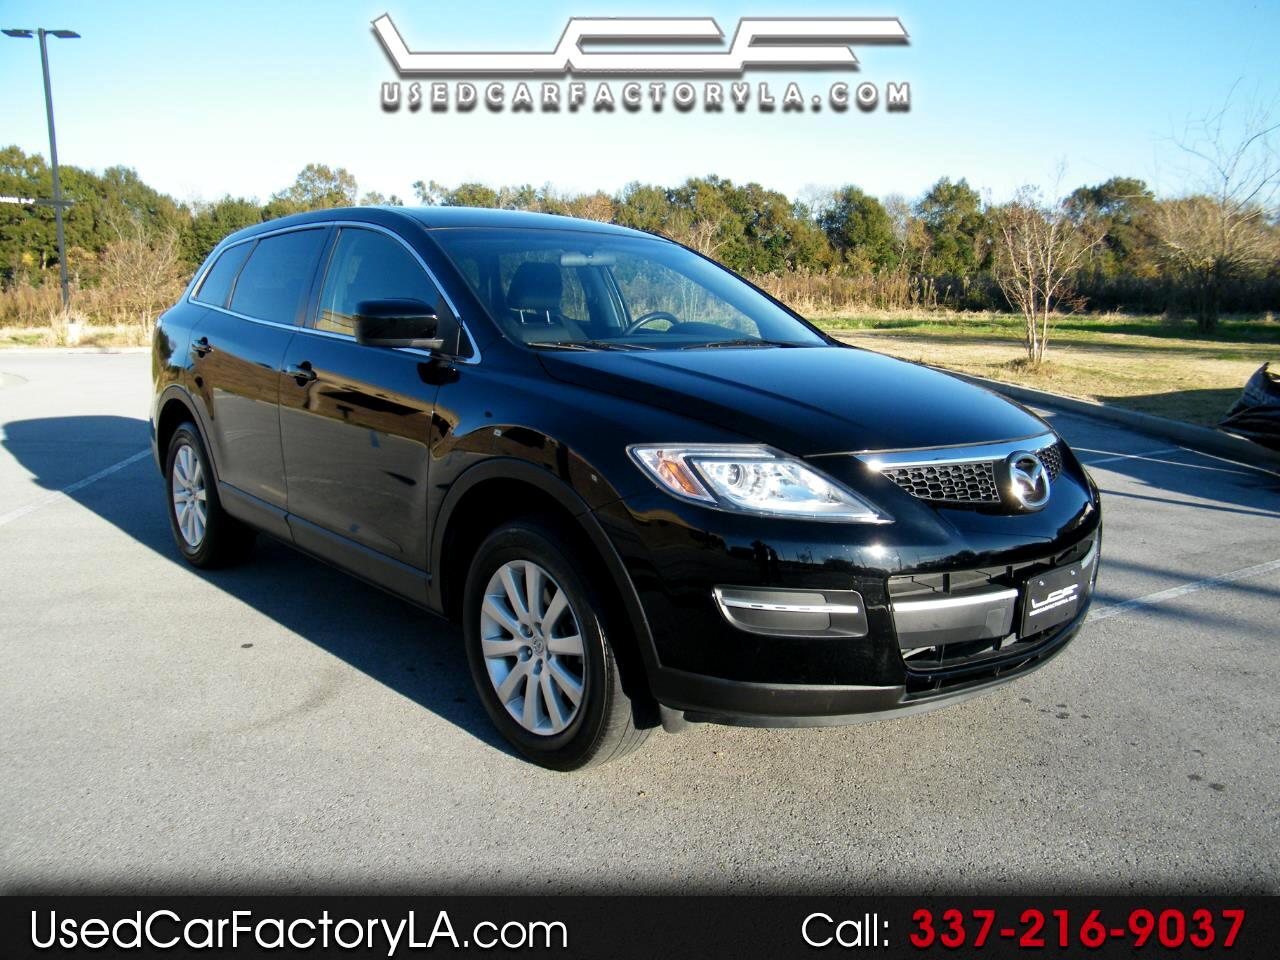 2009 Mazda CX-9 Grand Touring FWD